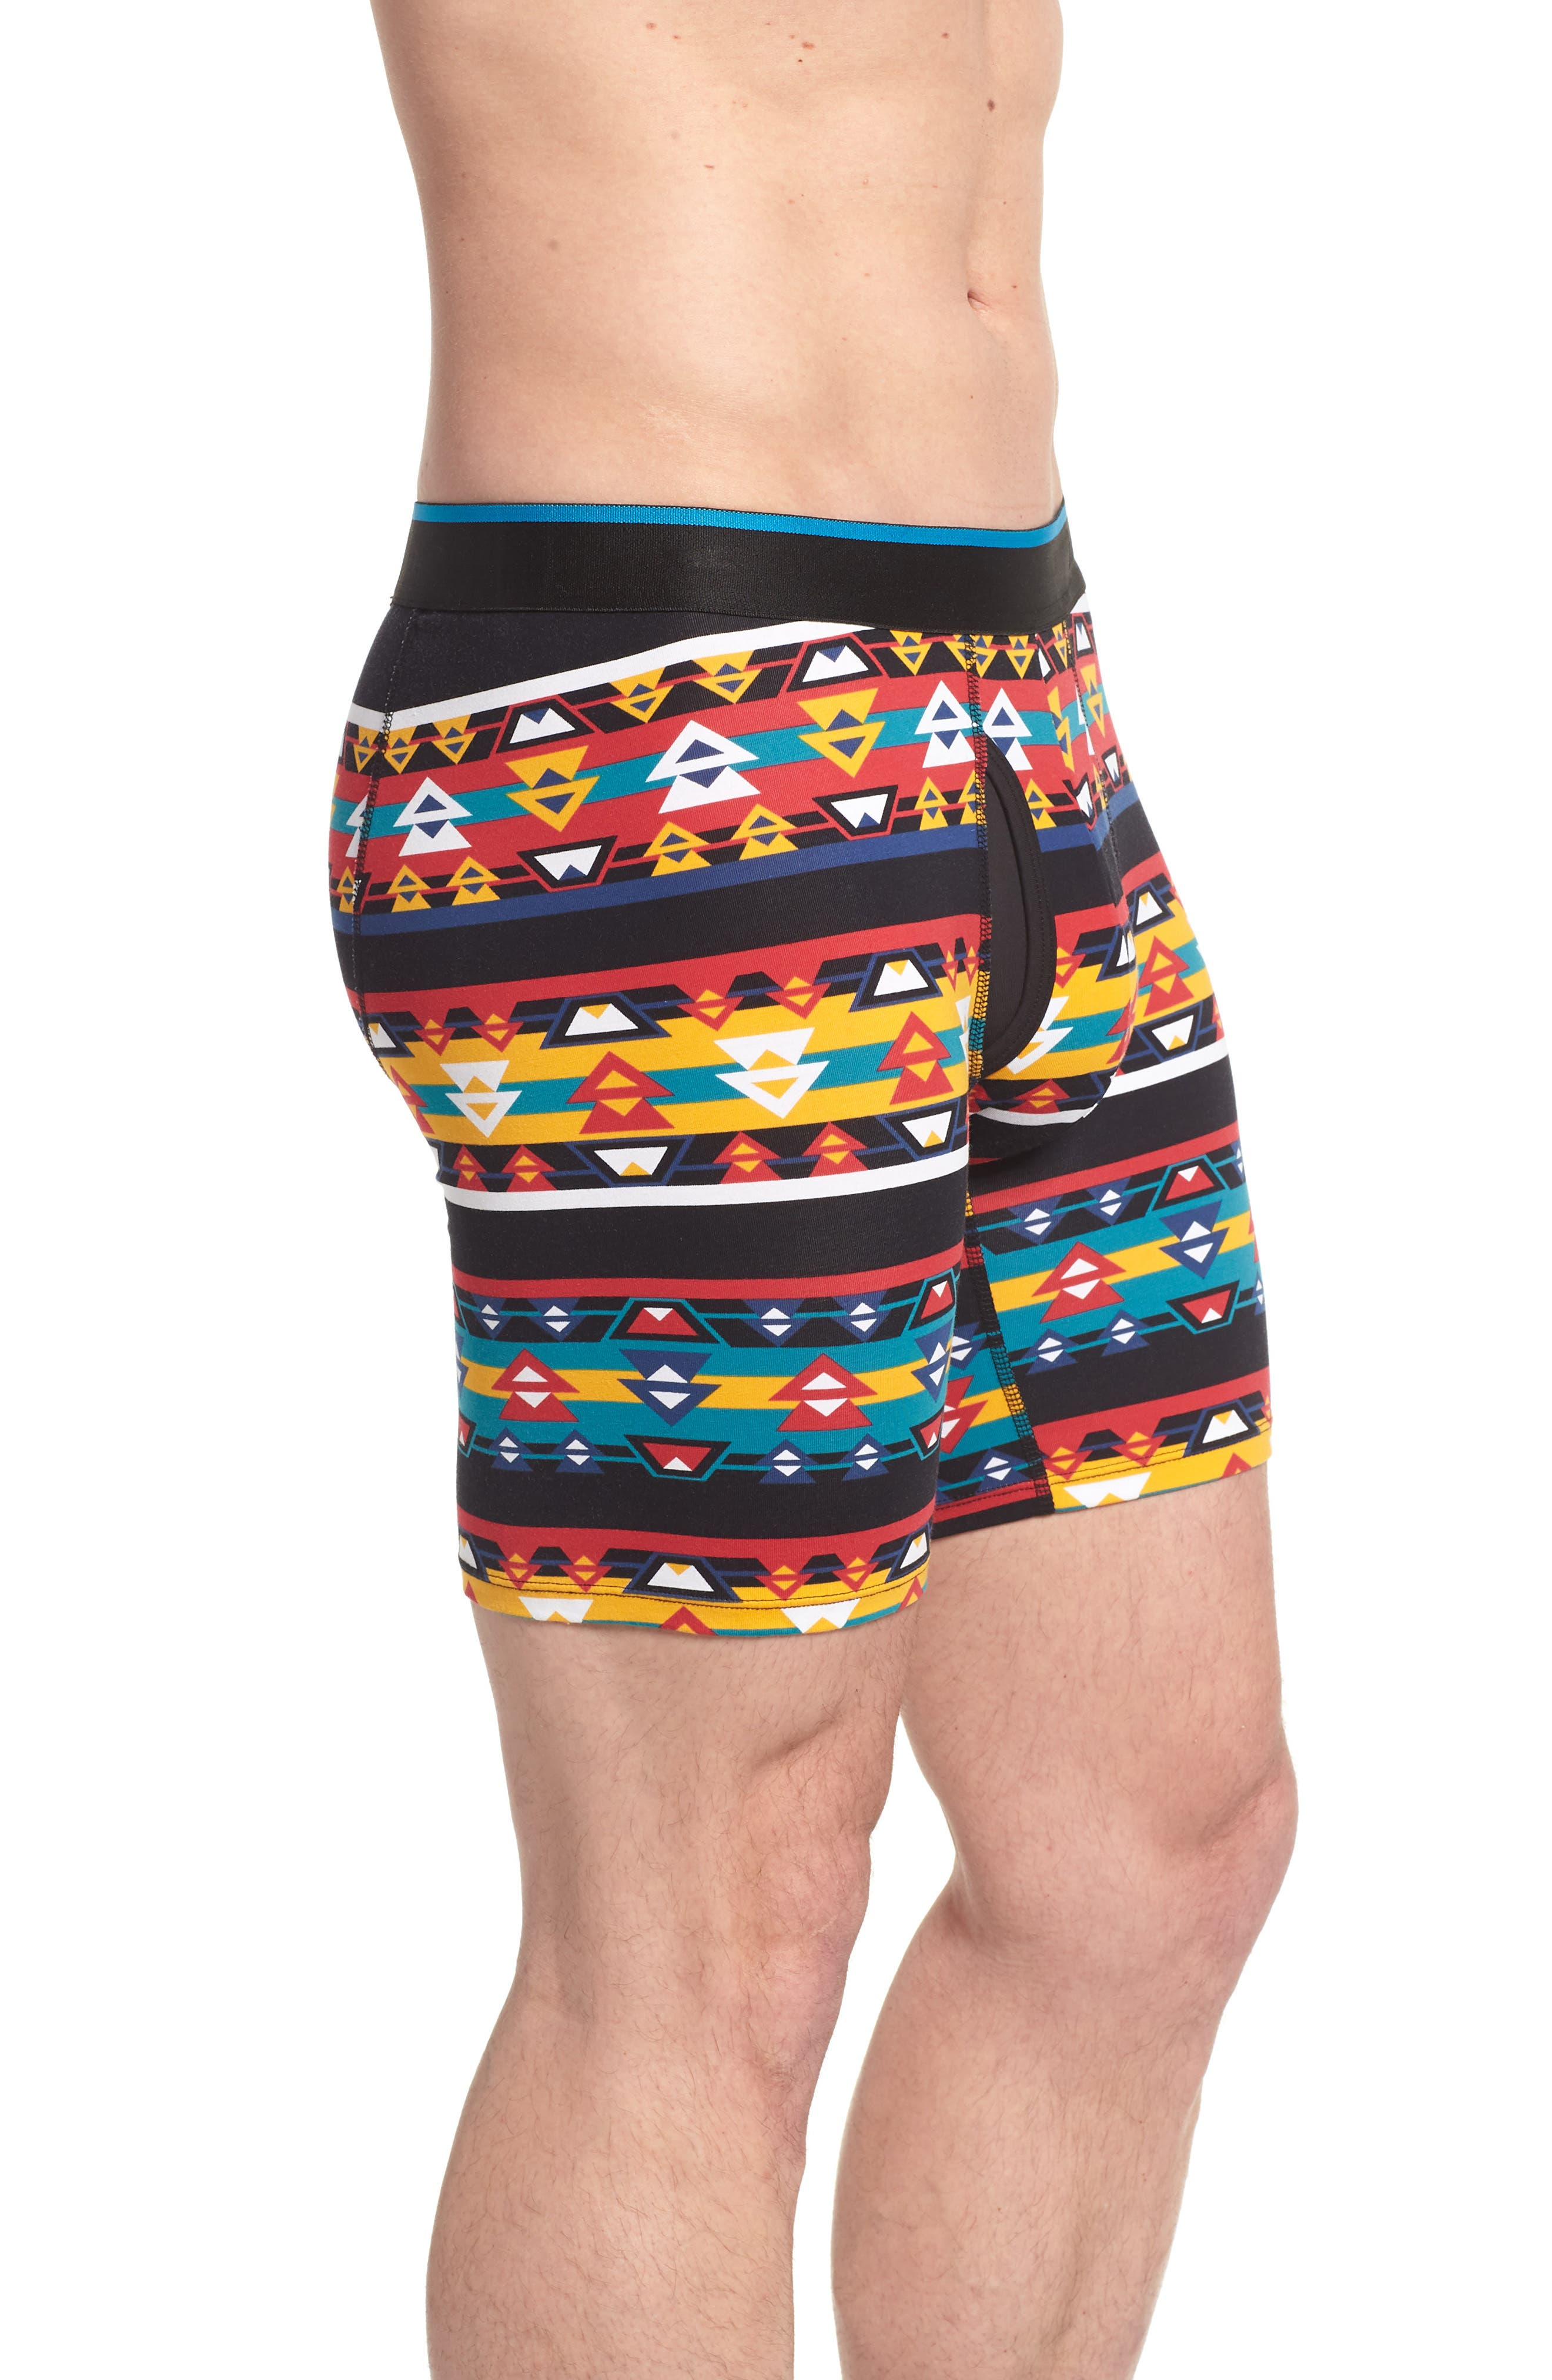 Southwestern Boxer Briefs,                             Alternate thumbnail 3, color,                             Black